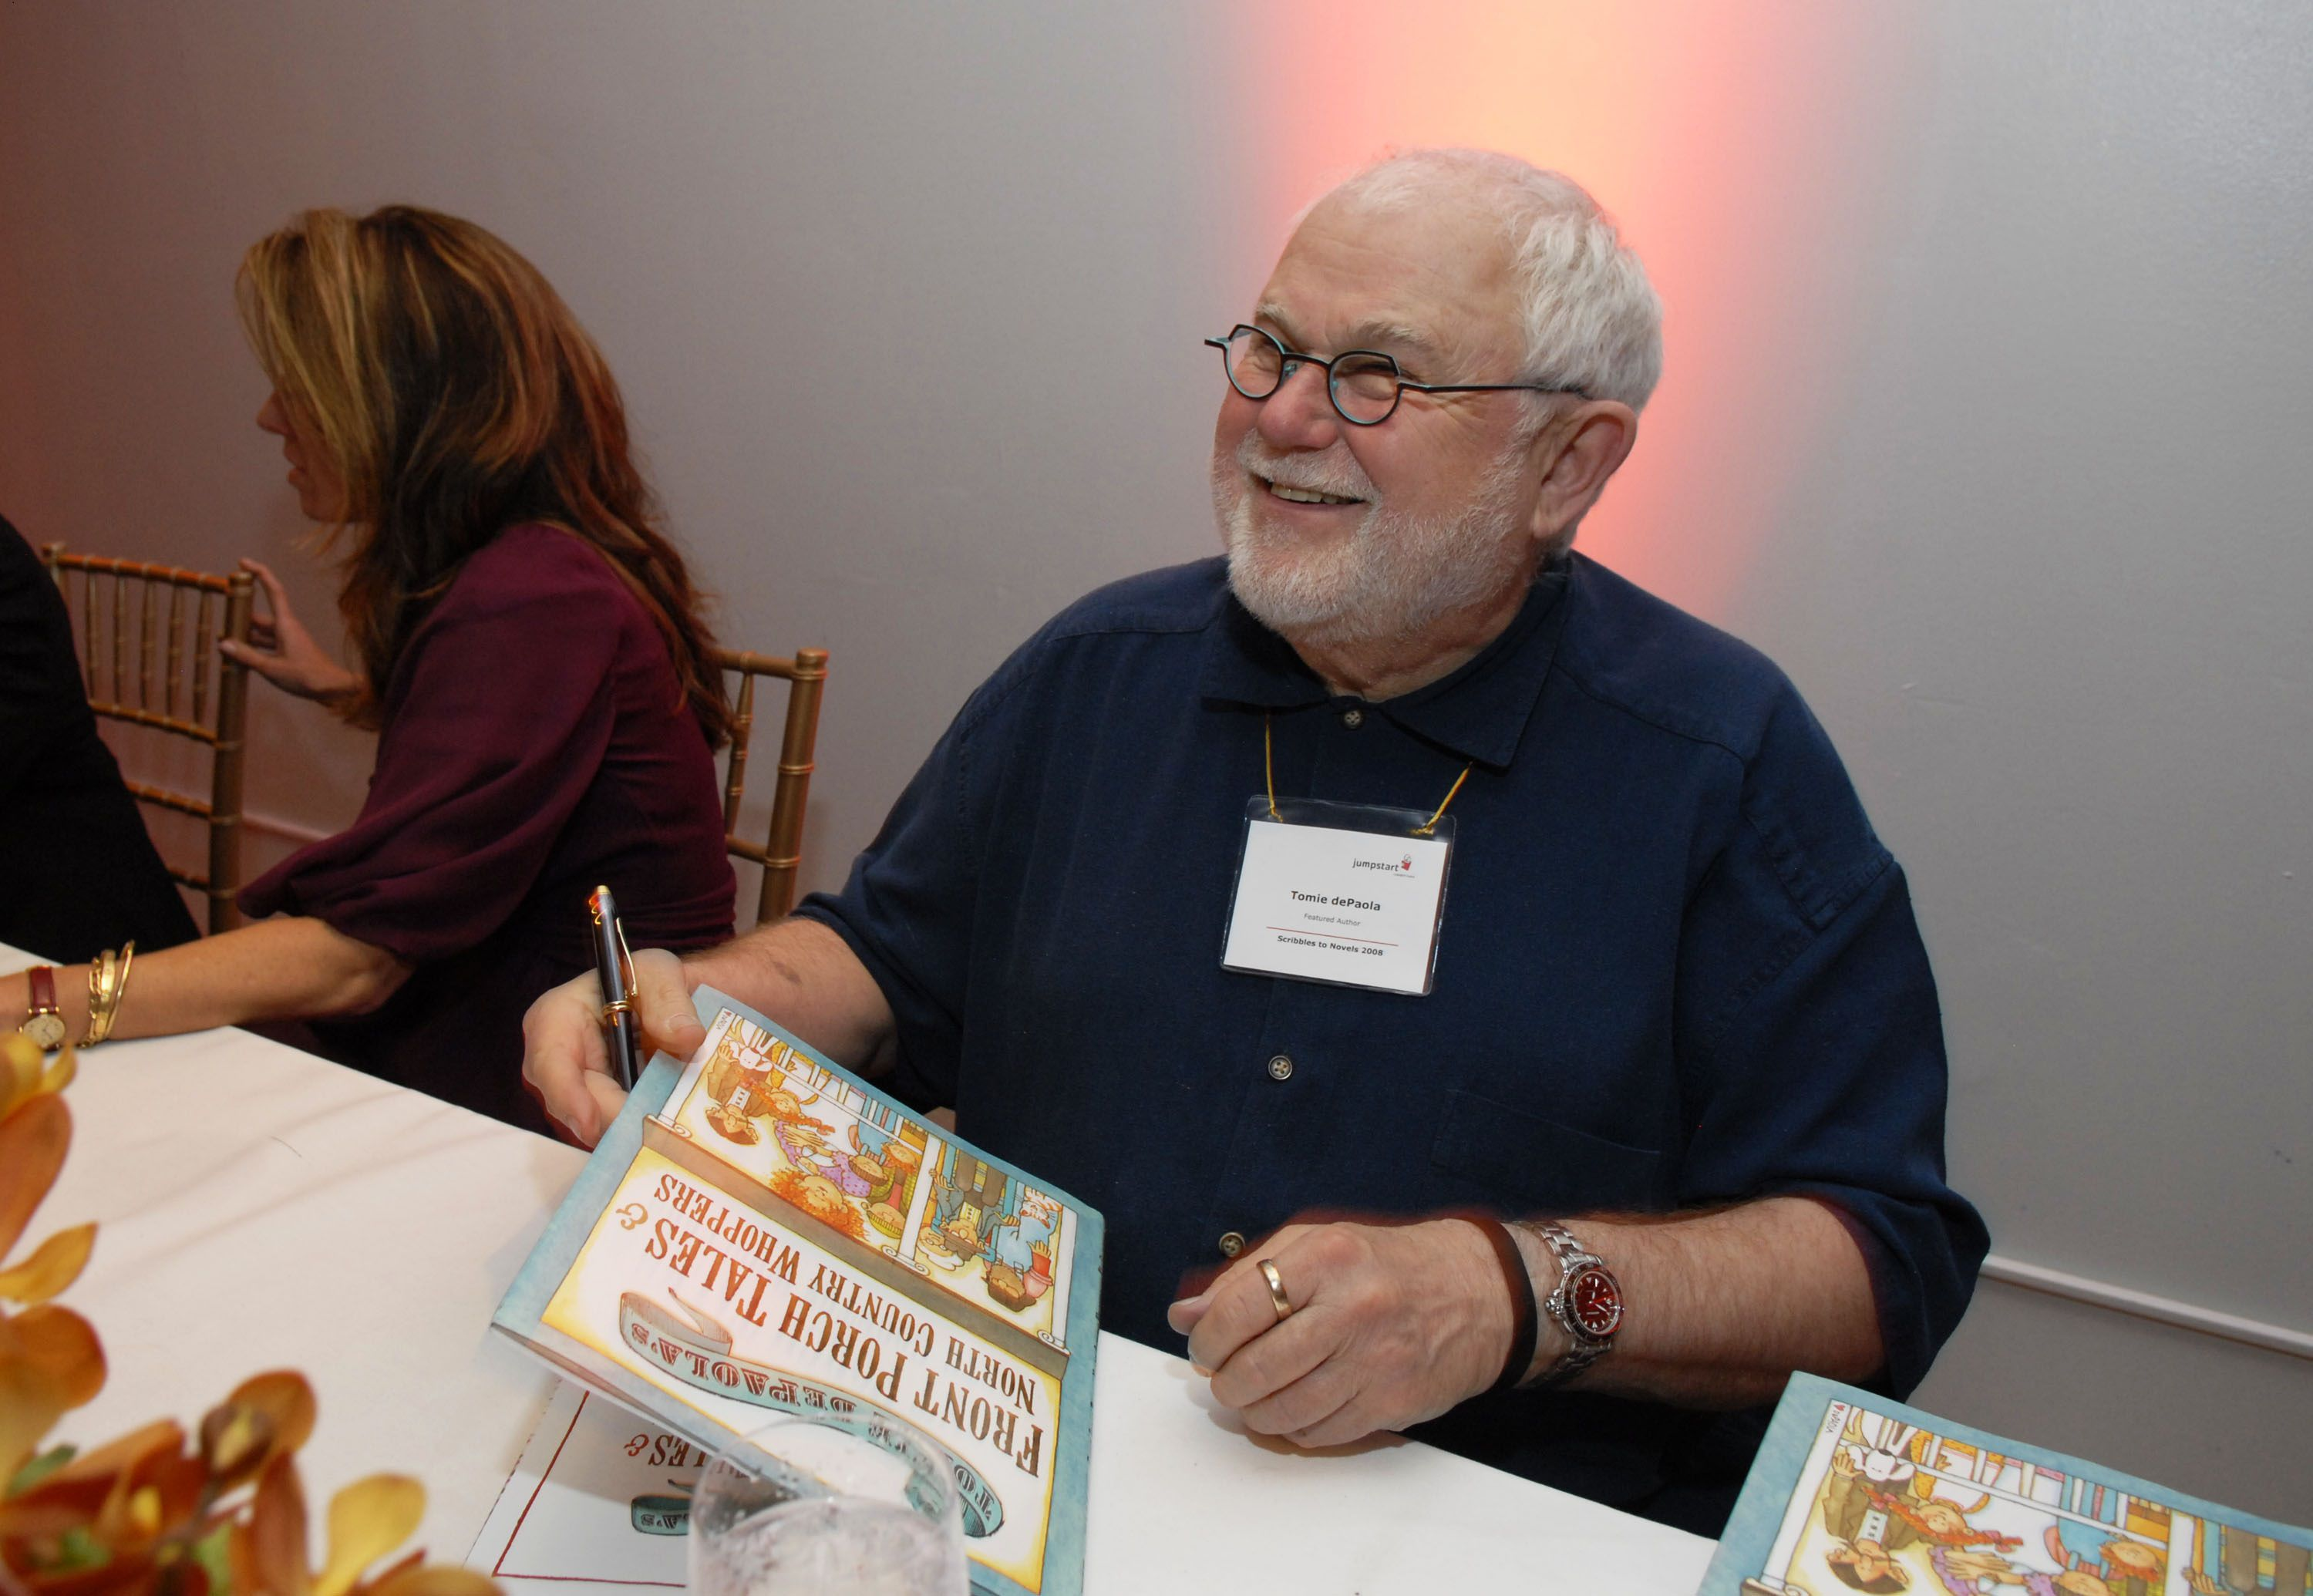 Biography of Children's Author Tomie dePaola